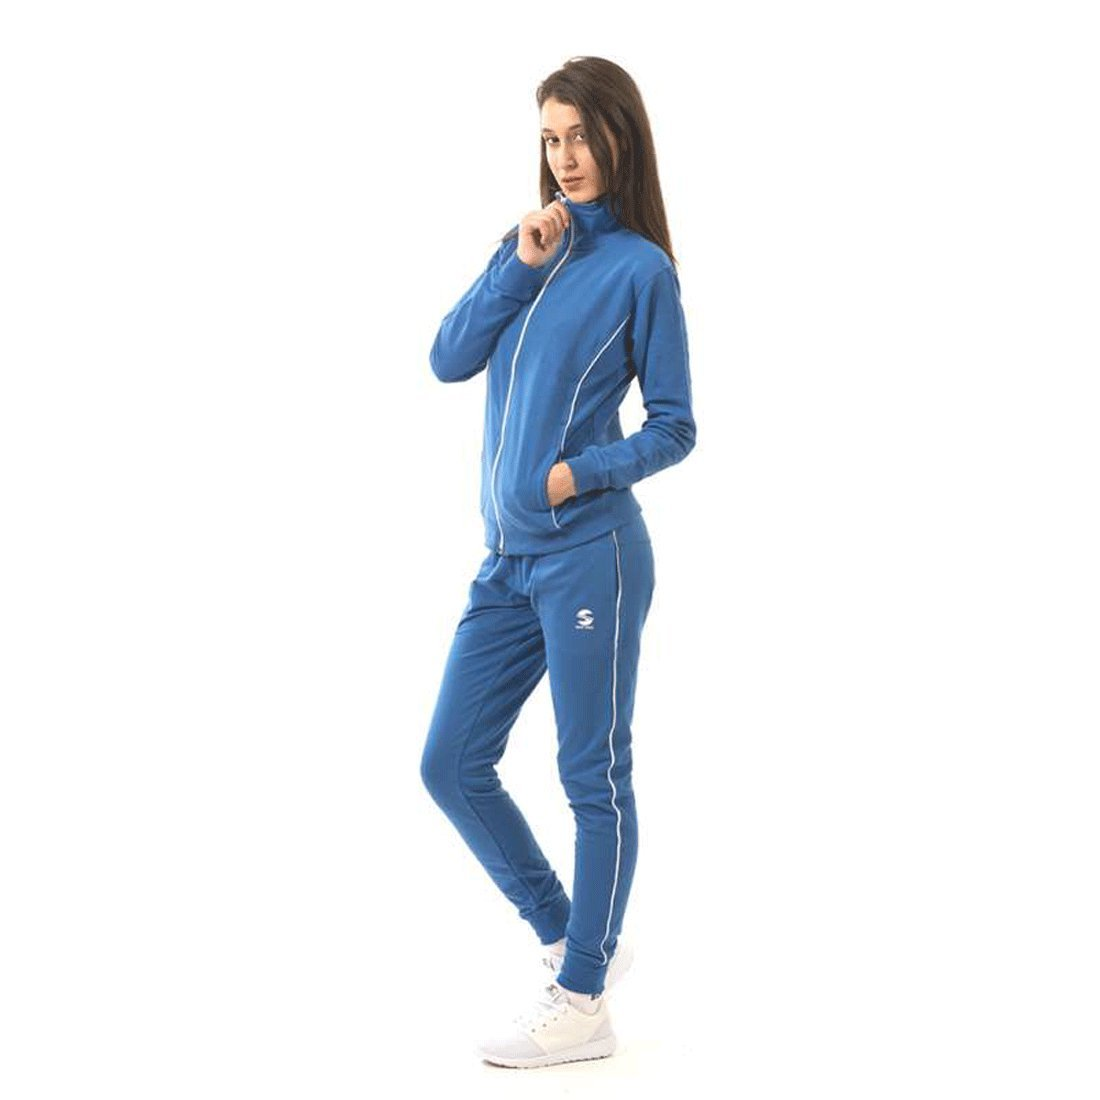 Softee Equipment CHANDAL PUNTO SOFTEE AGOS AZUL ROYAL Talla ...